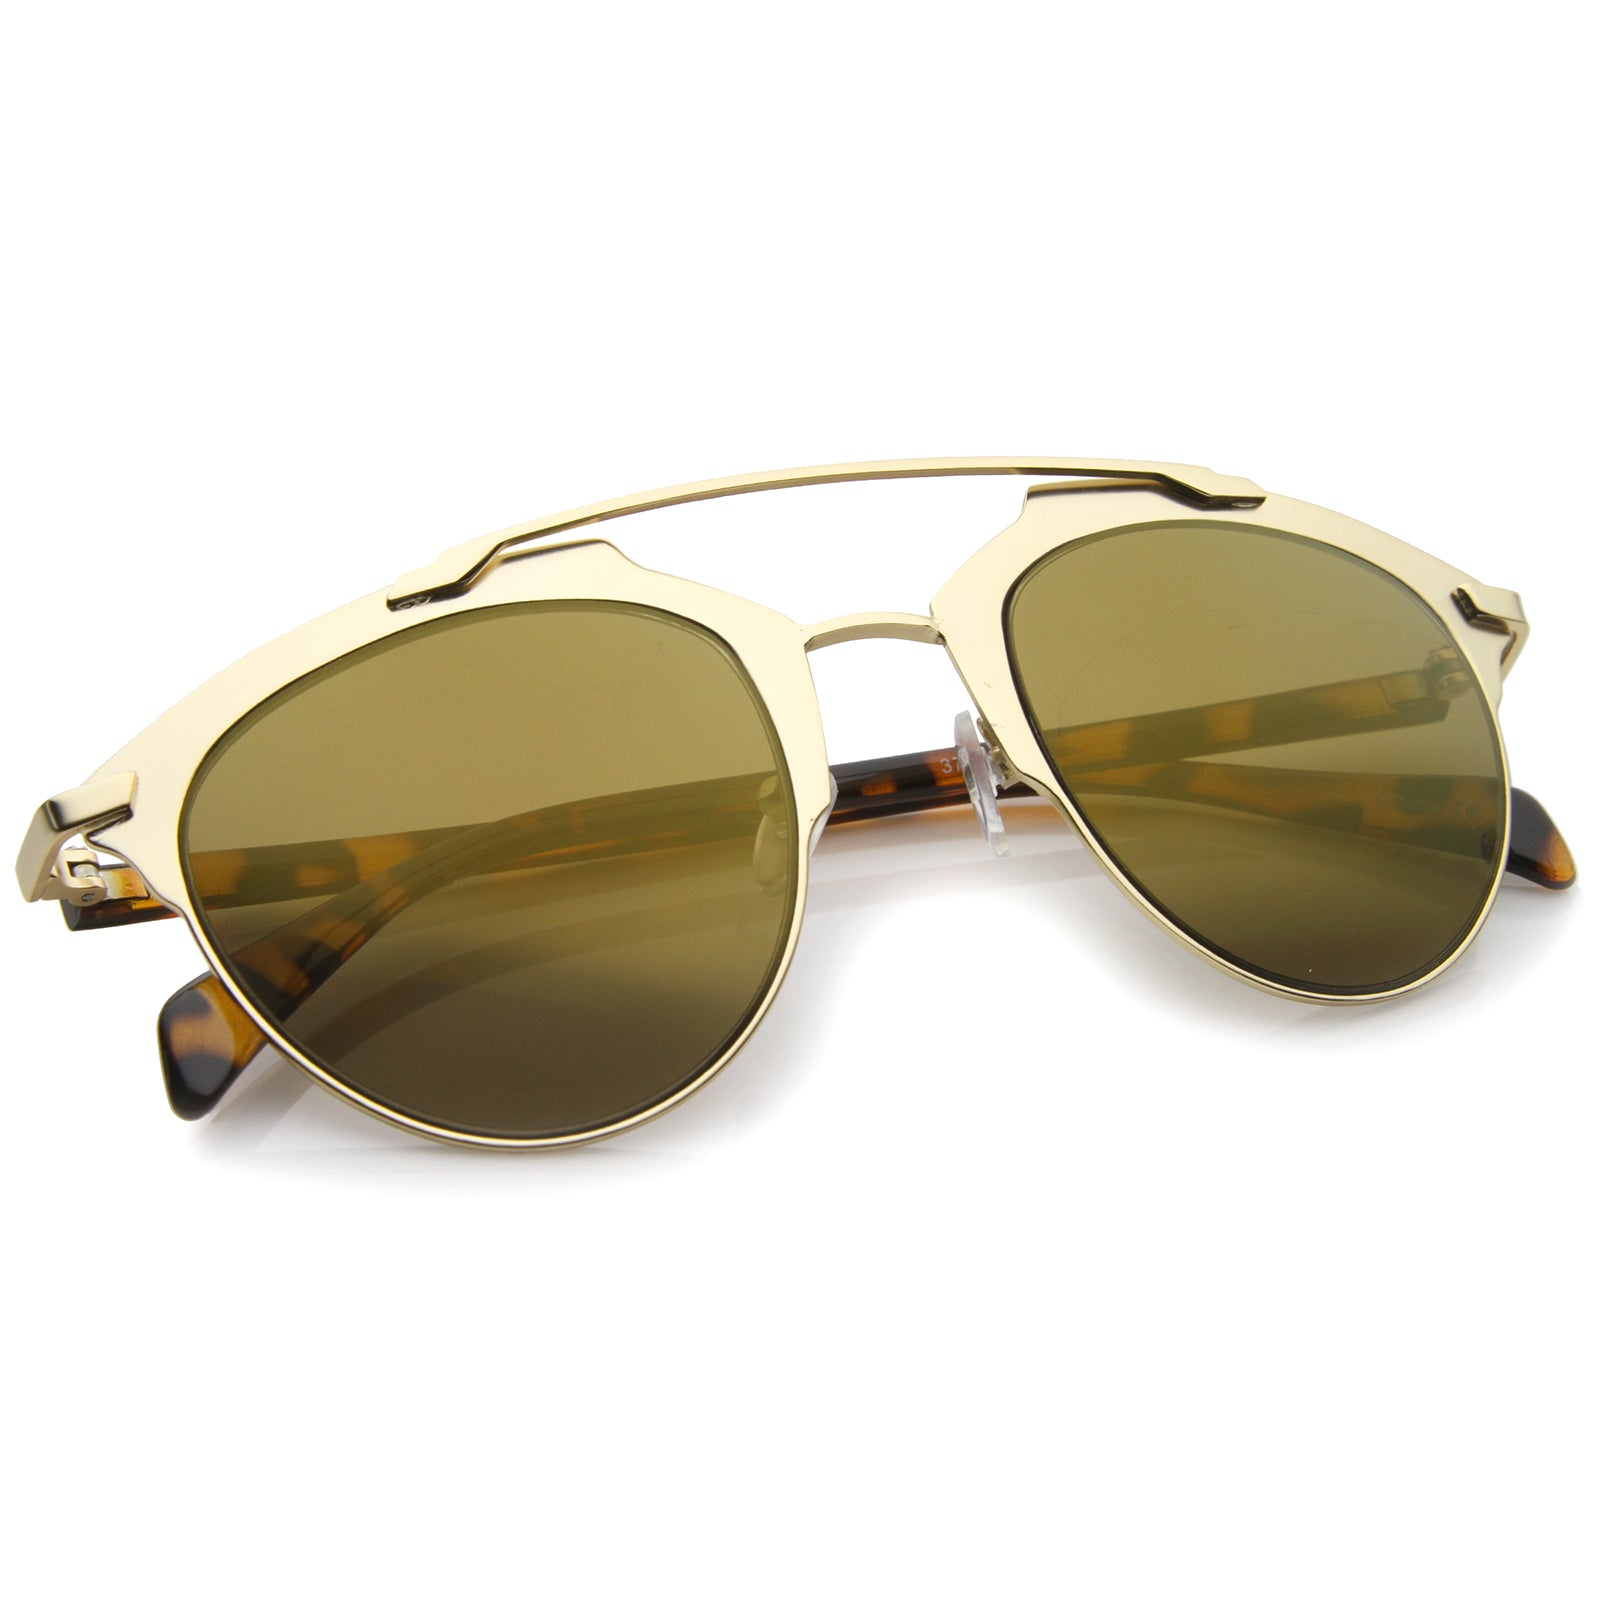 Modern Fashion Metal Double Bridge Mirror Lens Pantos Aviator Sunglasses 50mm - sunglass.la - 8